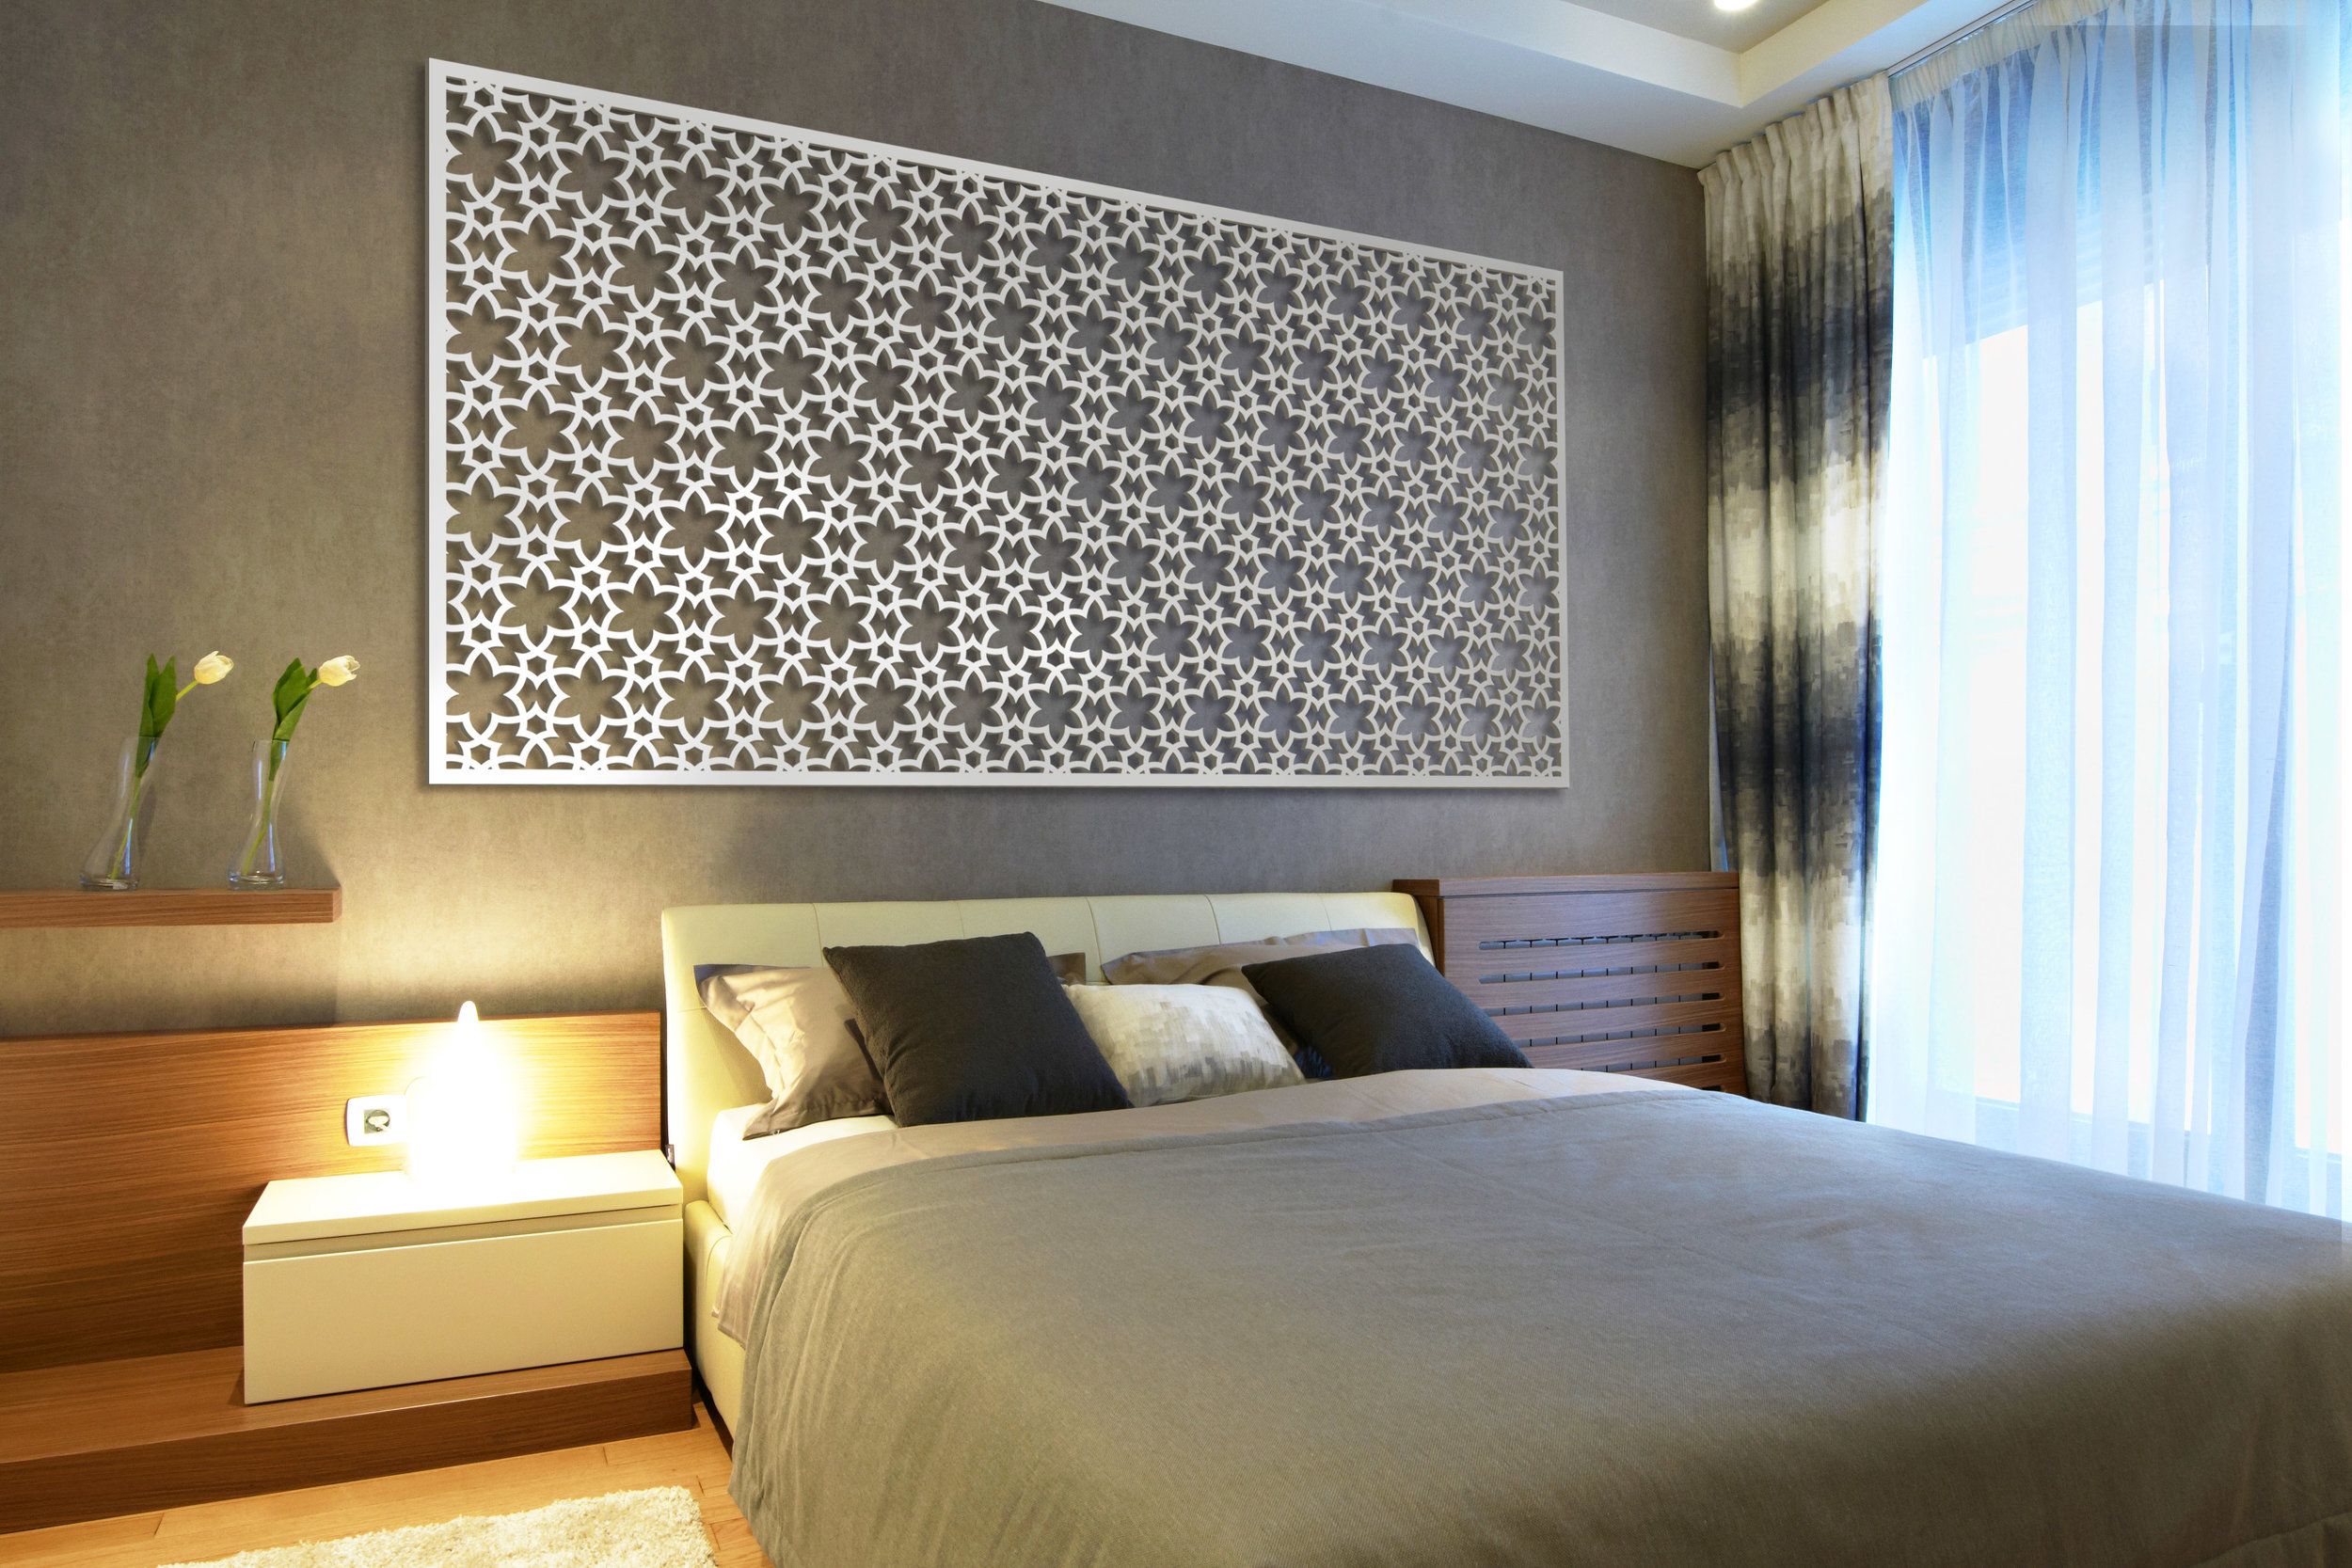 Installation Rendering C   Curvy Stars decorative hotel wall panel - painted